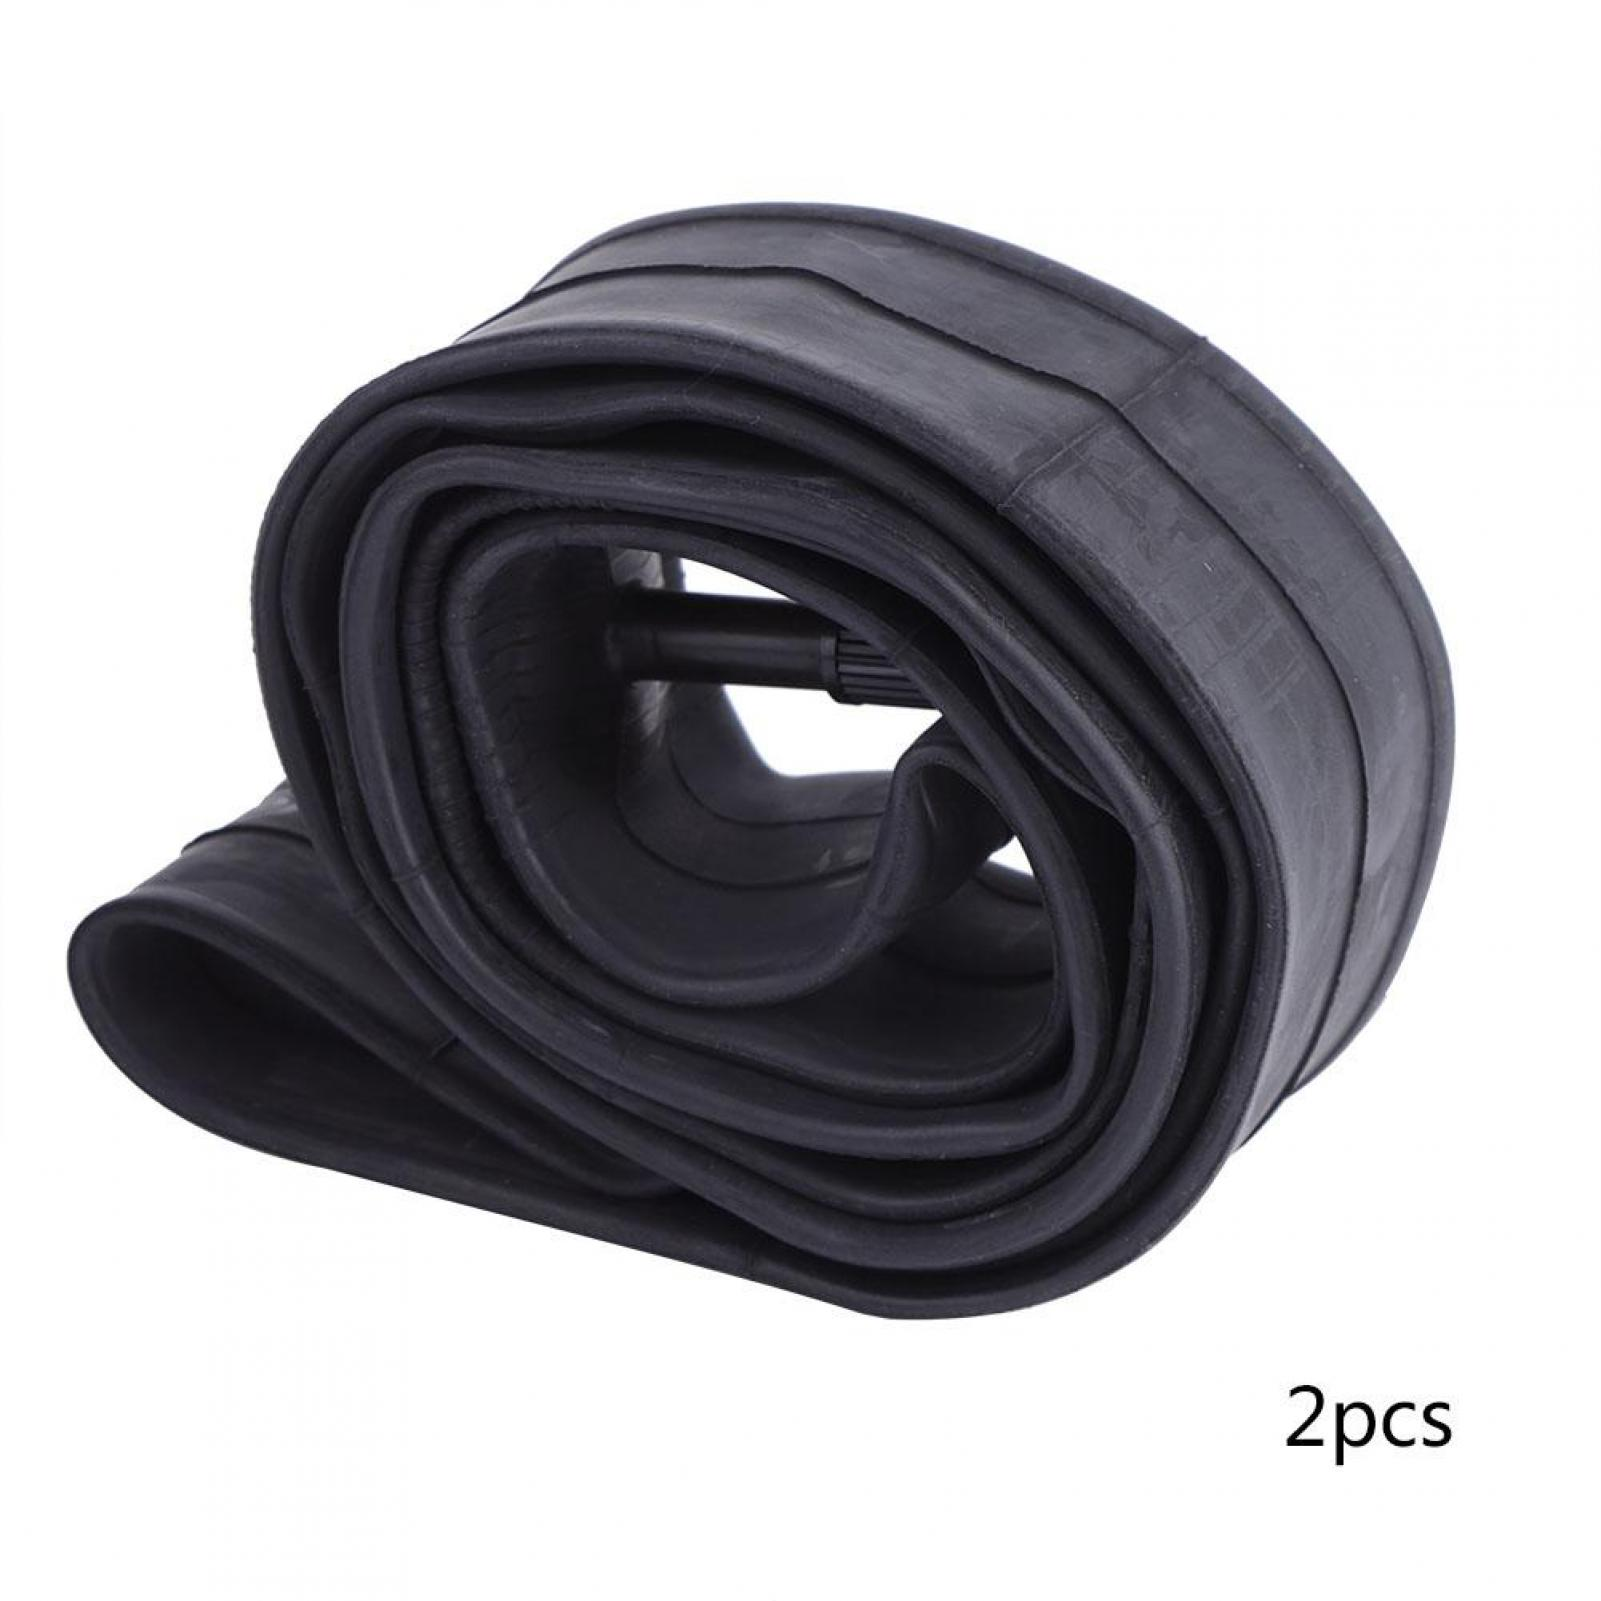 2PCS-Inner-Tube-Tyres-Butyl-Rubber-Interior-Tire-Tubes-for-MTB-Bike-Road-Bicycle thumbnail 25